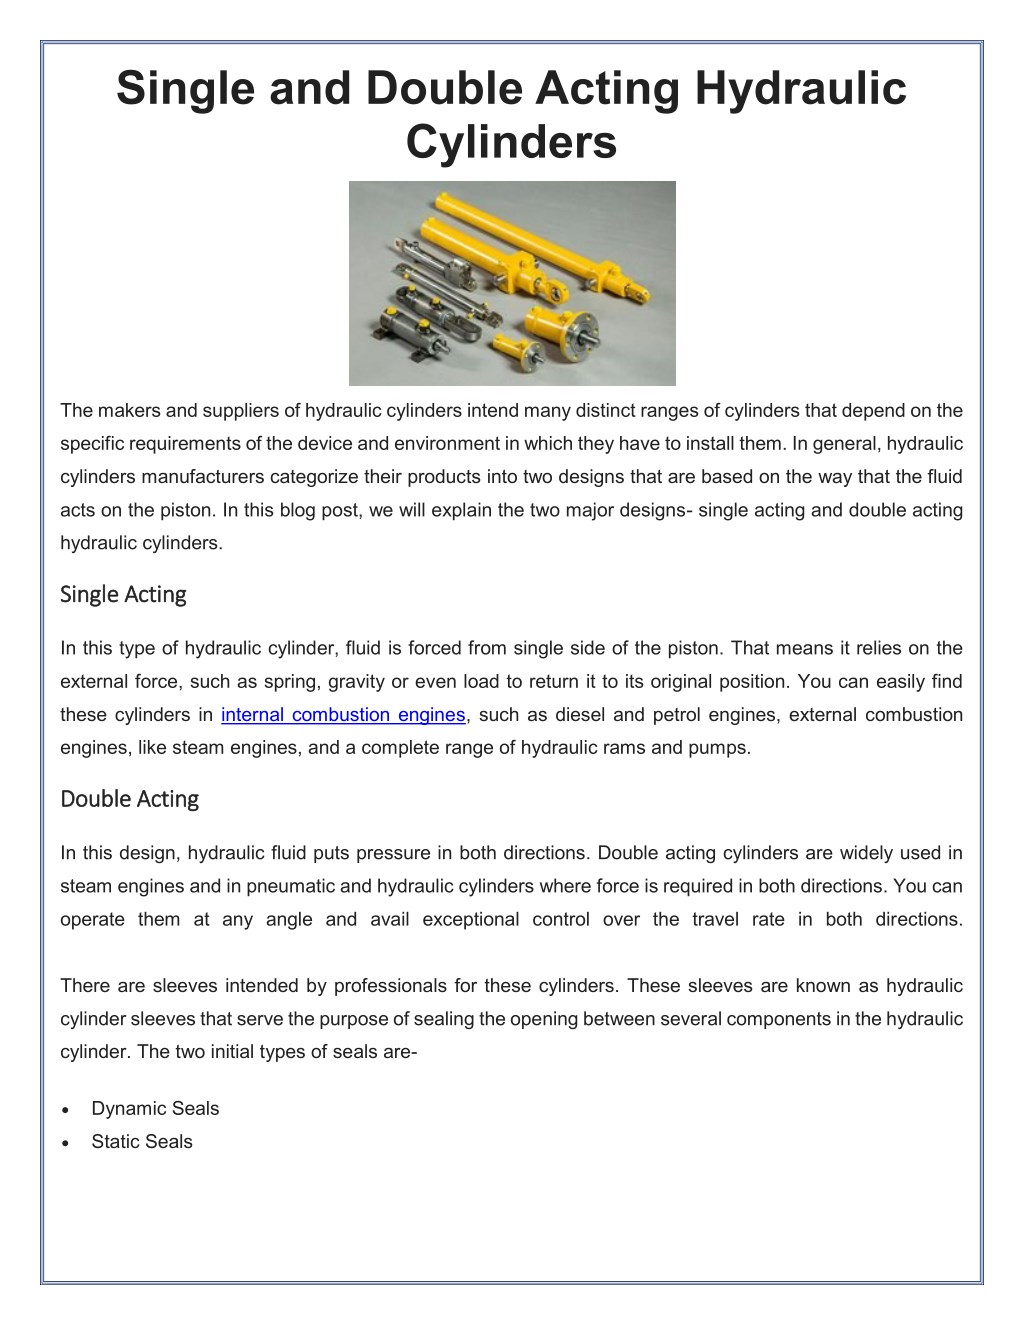 PPT - Single and Double Acting Hydraulic Cylinders